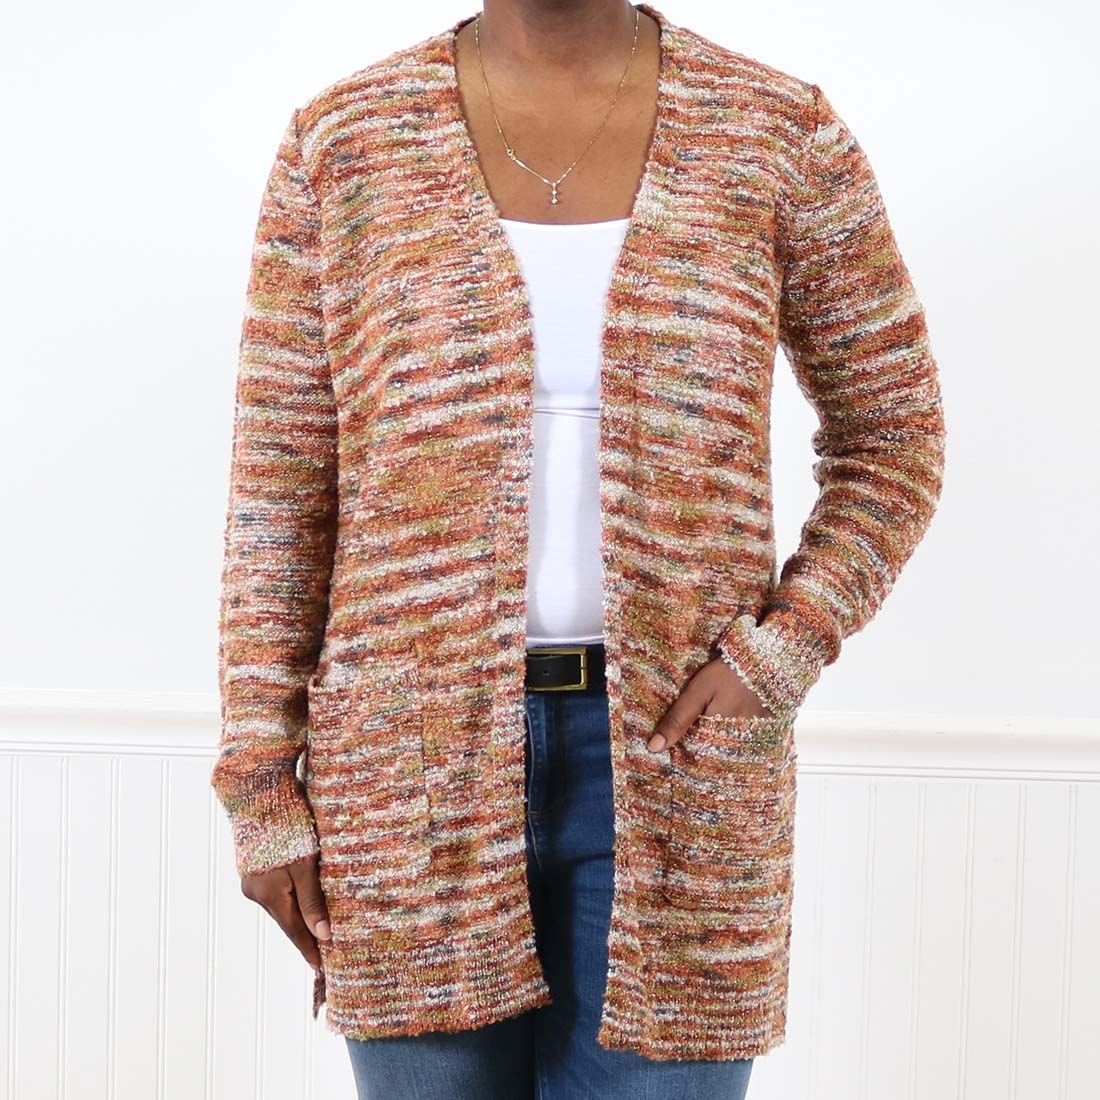 FEESON Toddler//Little Kid Cotton Embroidery Crew Neck Button up Cardigan Sweater